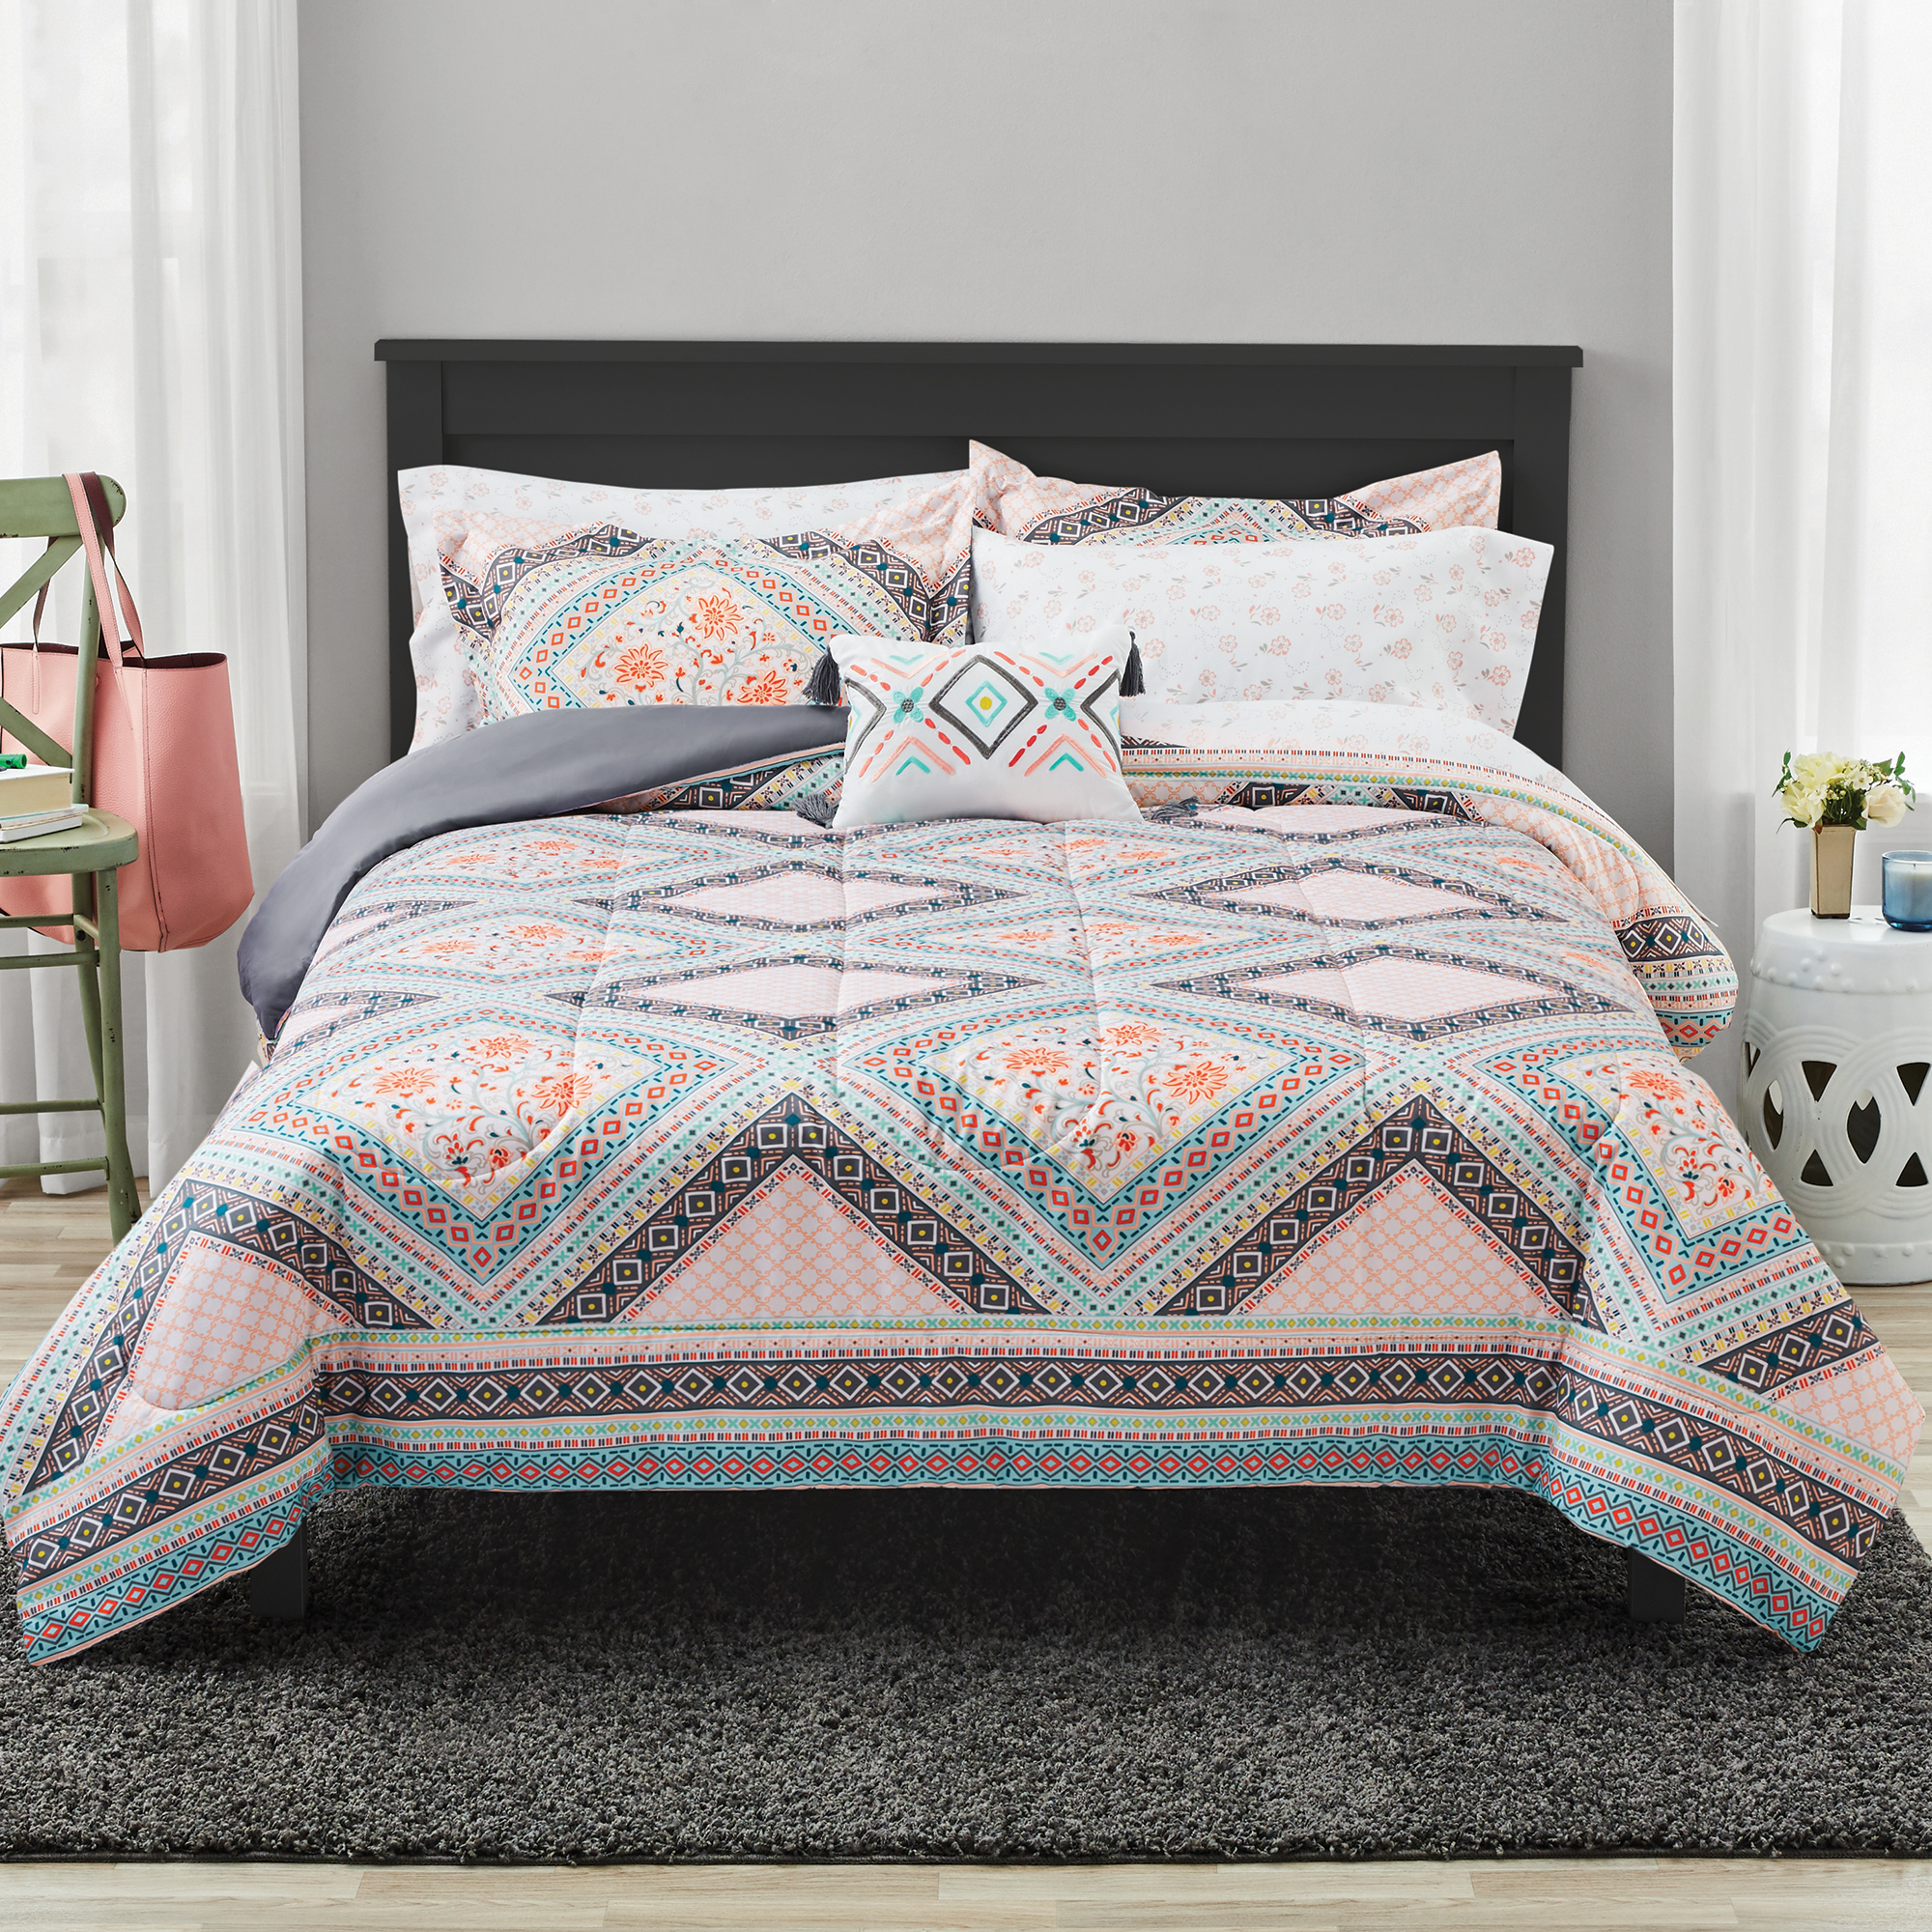 Mainstays Diamond Floral Bed In a Bag Comforter Bedding